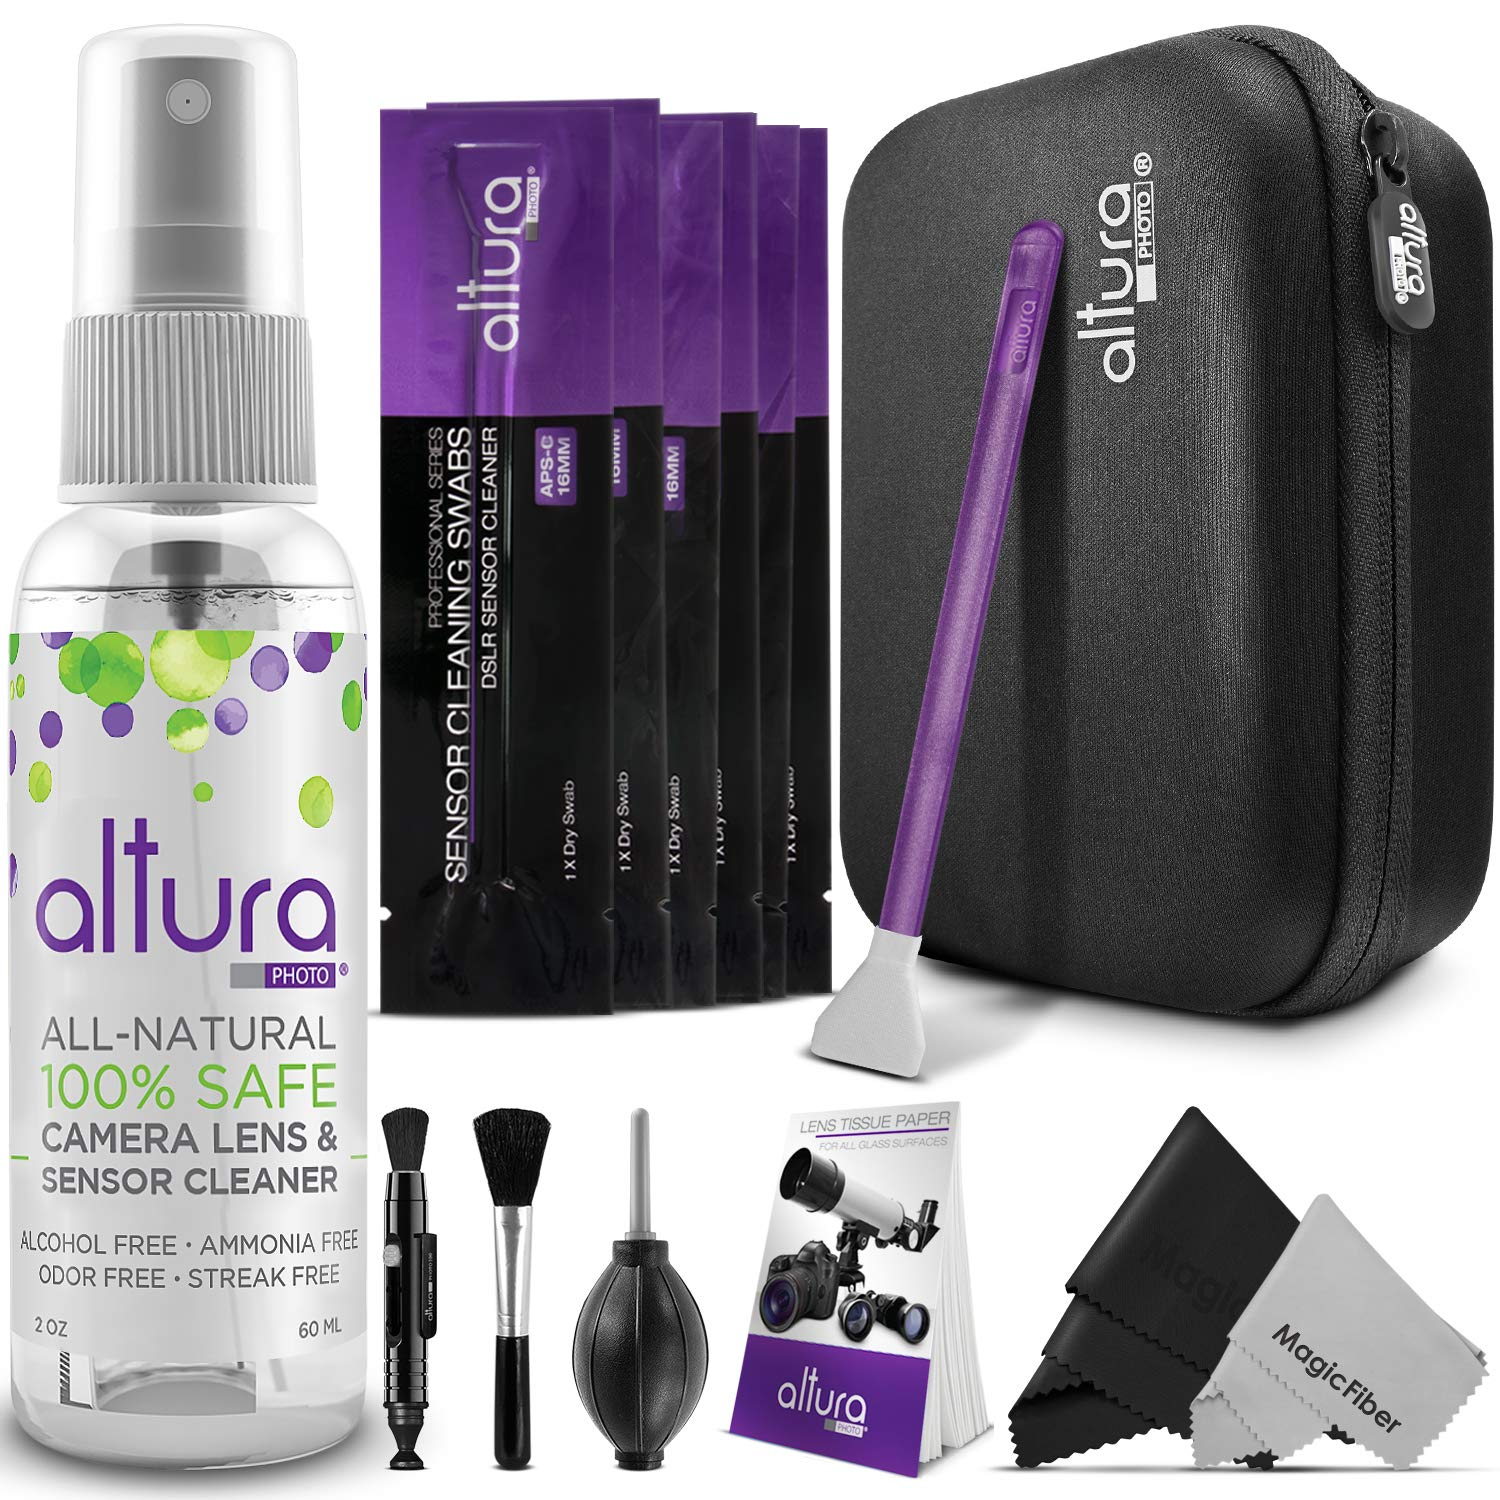 Altura Photo Professional Cleaning Kit APS-C DSLR Cameras Sensor Cleaning Swabs Carry Case QM0855